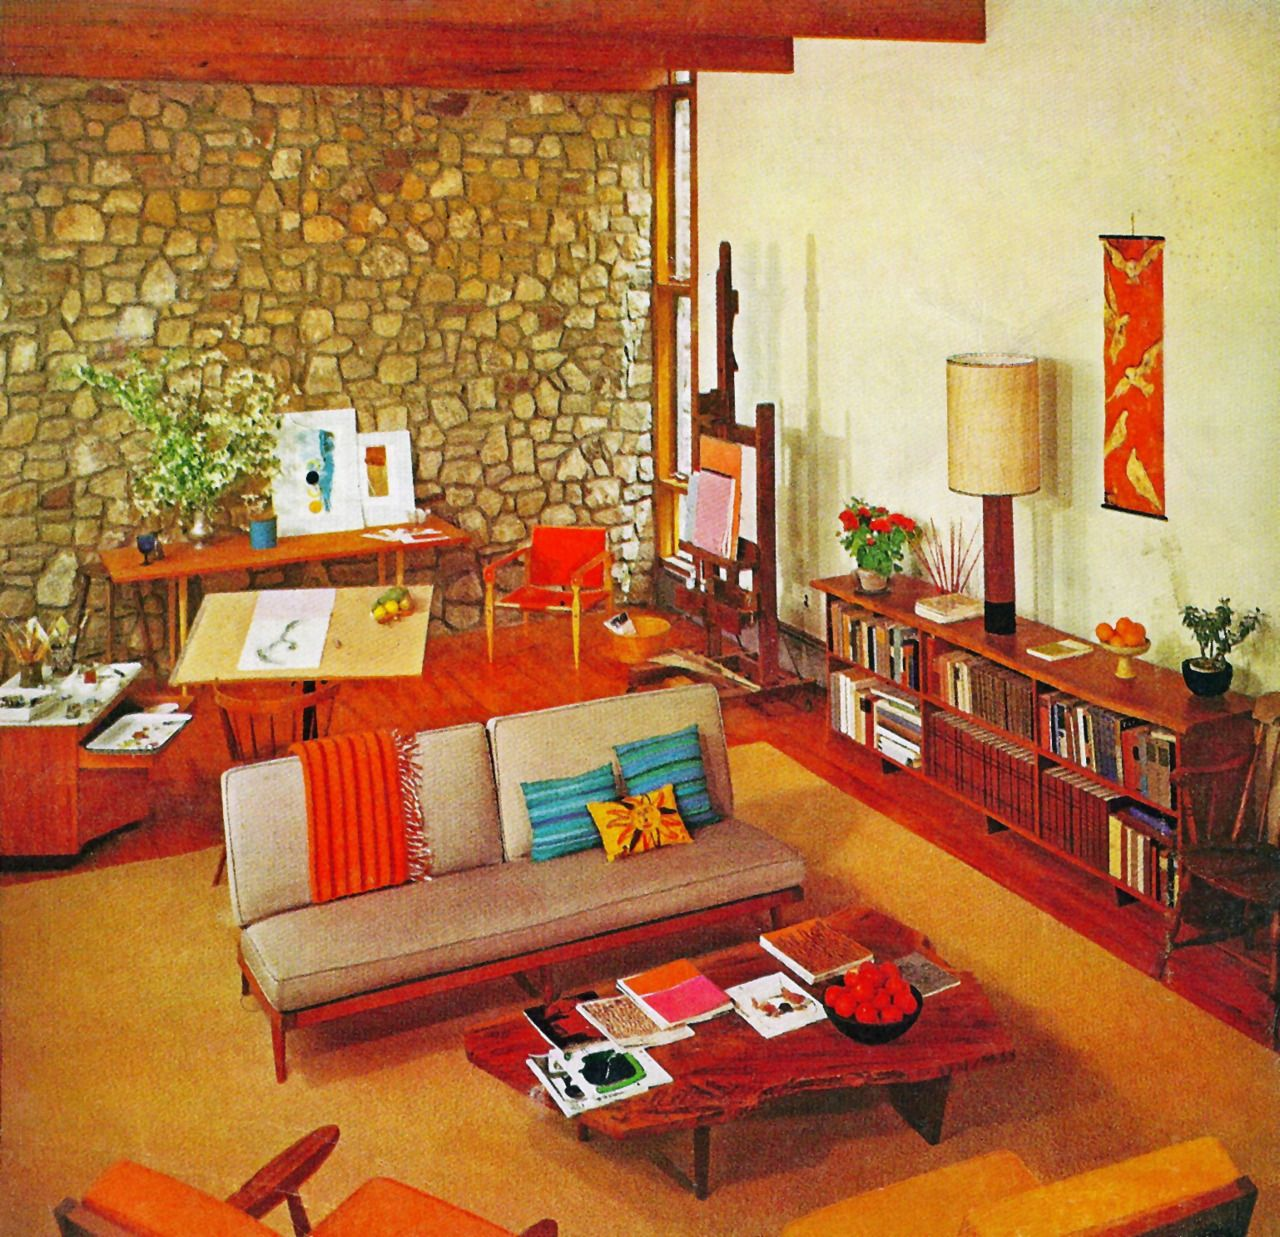 Retro Home Design Image Of 70s Decorating Ideas Wouldn 39t Say No